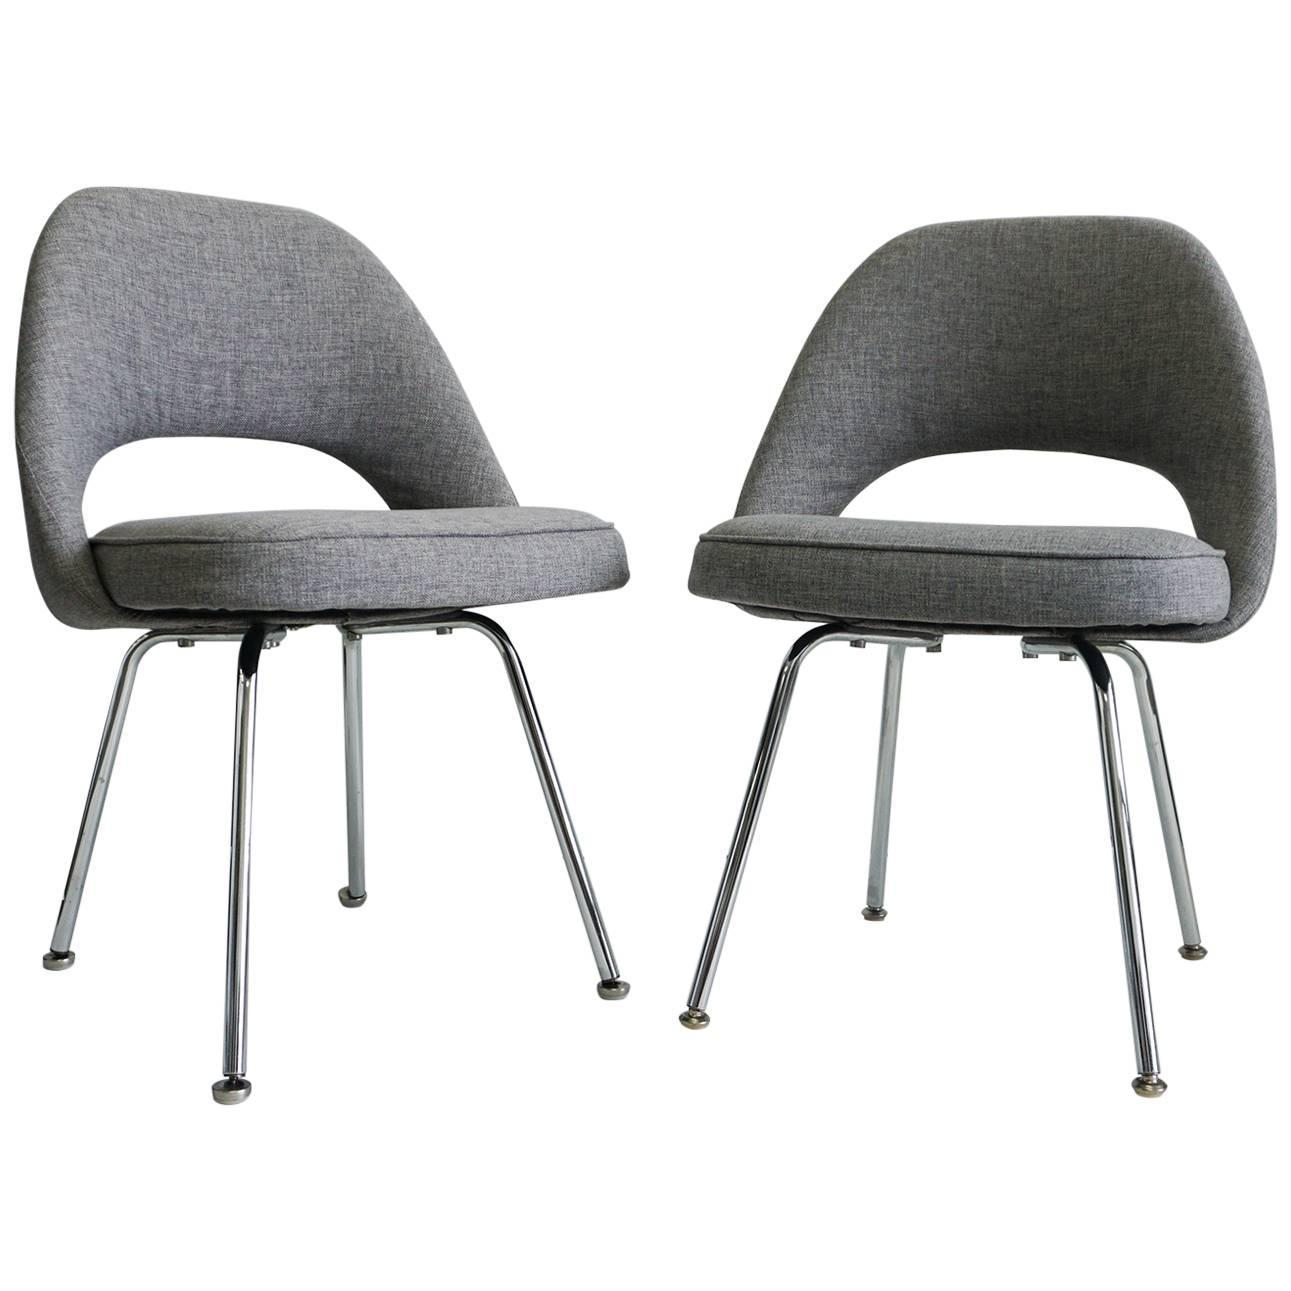 Saarinen executive armless chairs for sale at 1stdibs for Saarinen executive armless chair